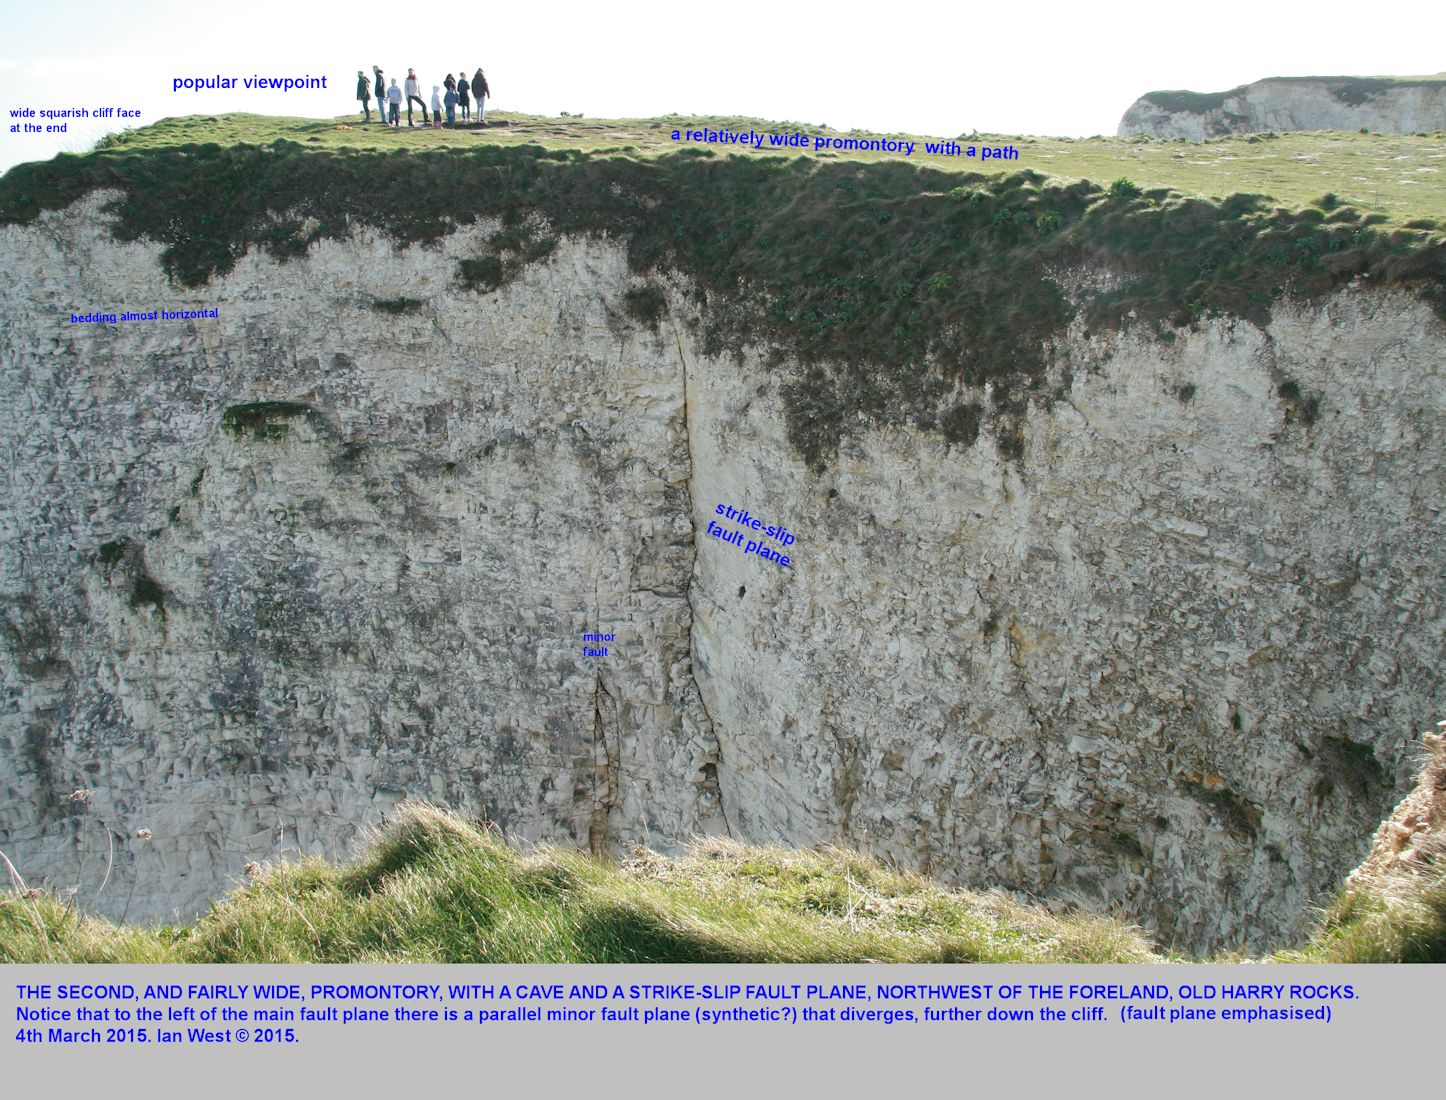 The strike-slip fault can be seen on the north side of the wide and second Chalk promontory used as viewpoint, and southwest of Old Harry Rocks, Dorset